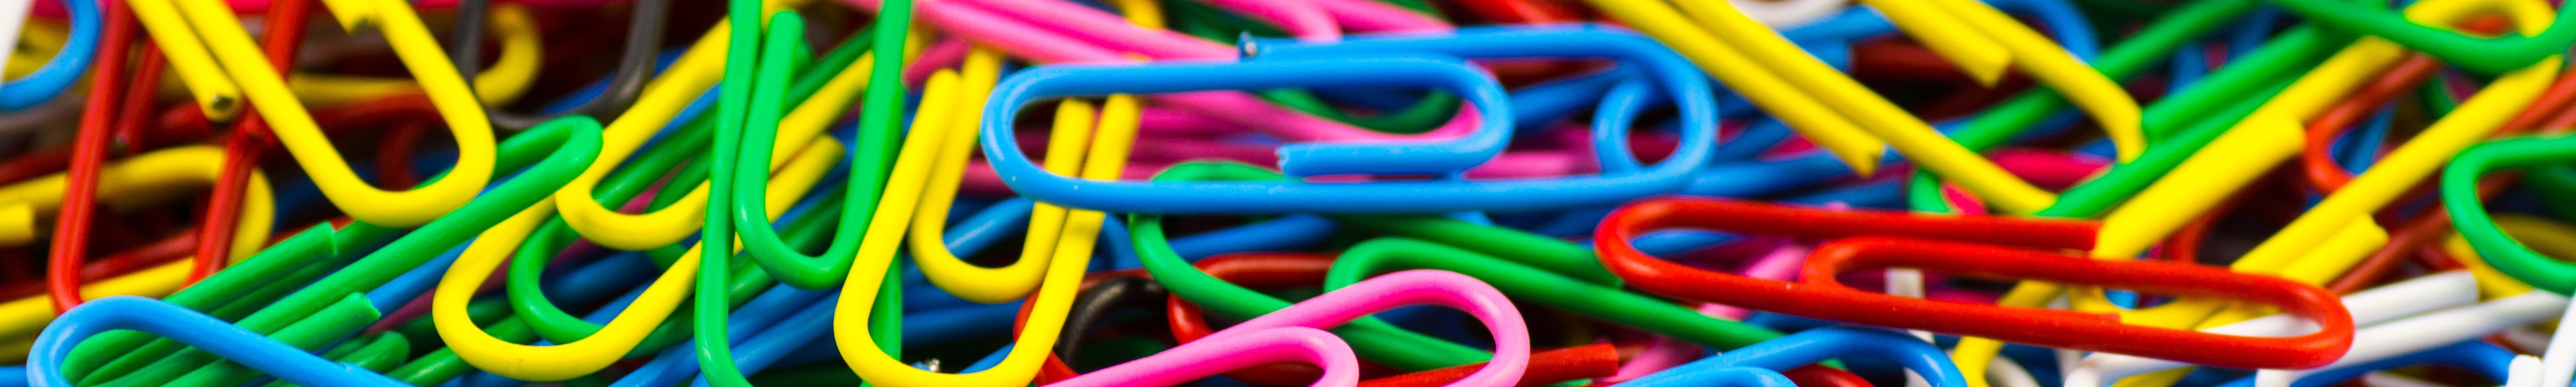 paperclips2000x300